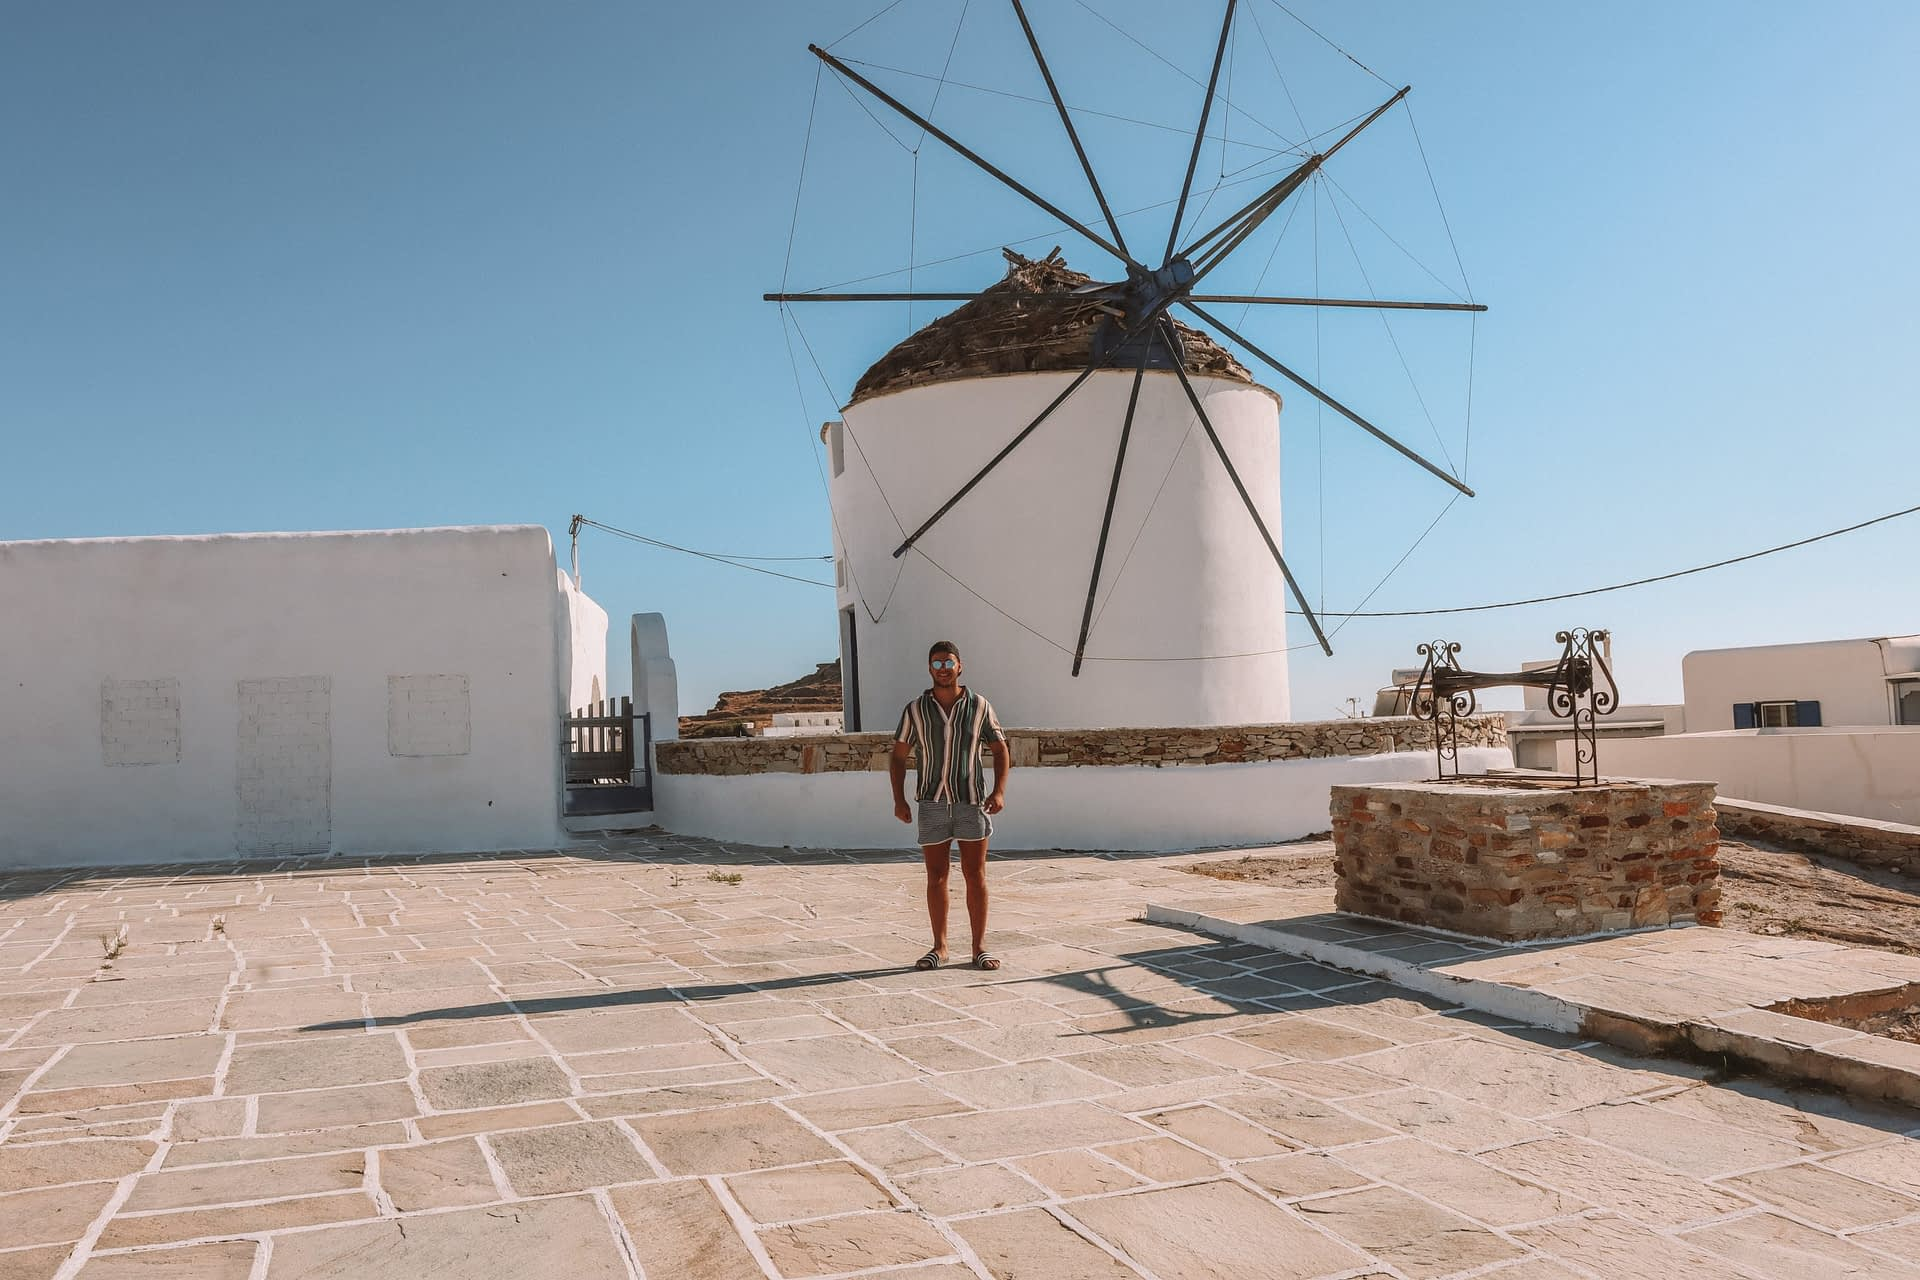 A man carrying invisible carpets in front of a windmill in Ios